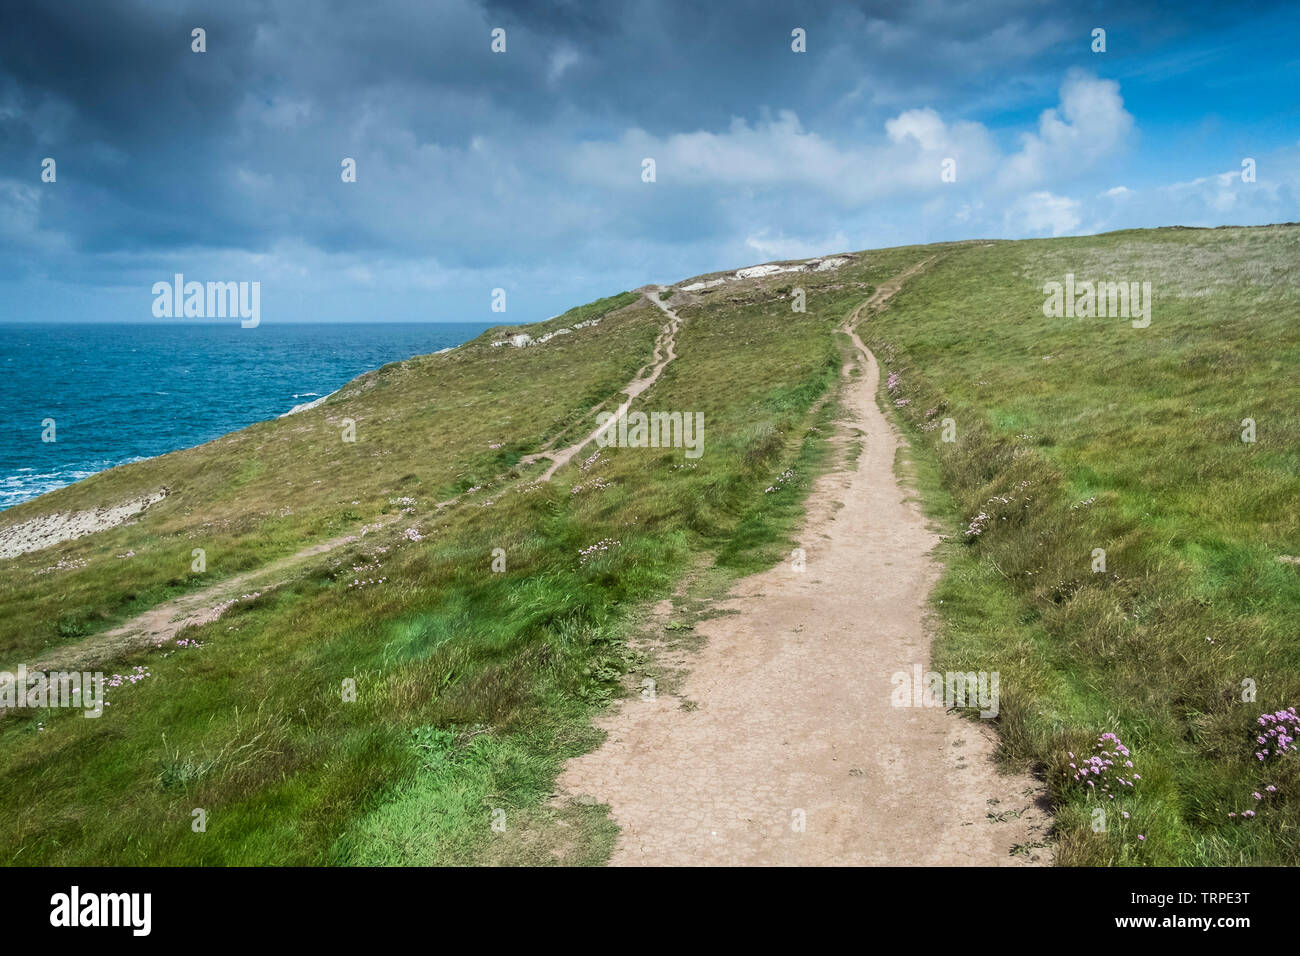 The South West Coast Path on the coast of Pentire Point West in Newquay in Cornwall. - Stock Image